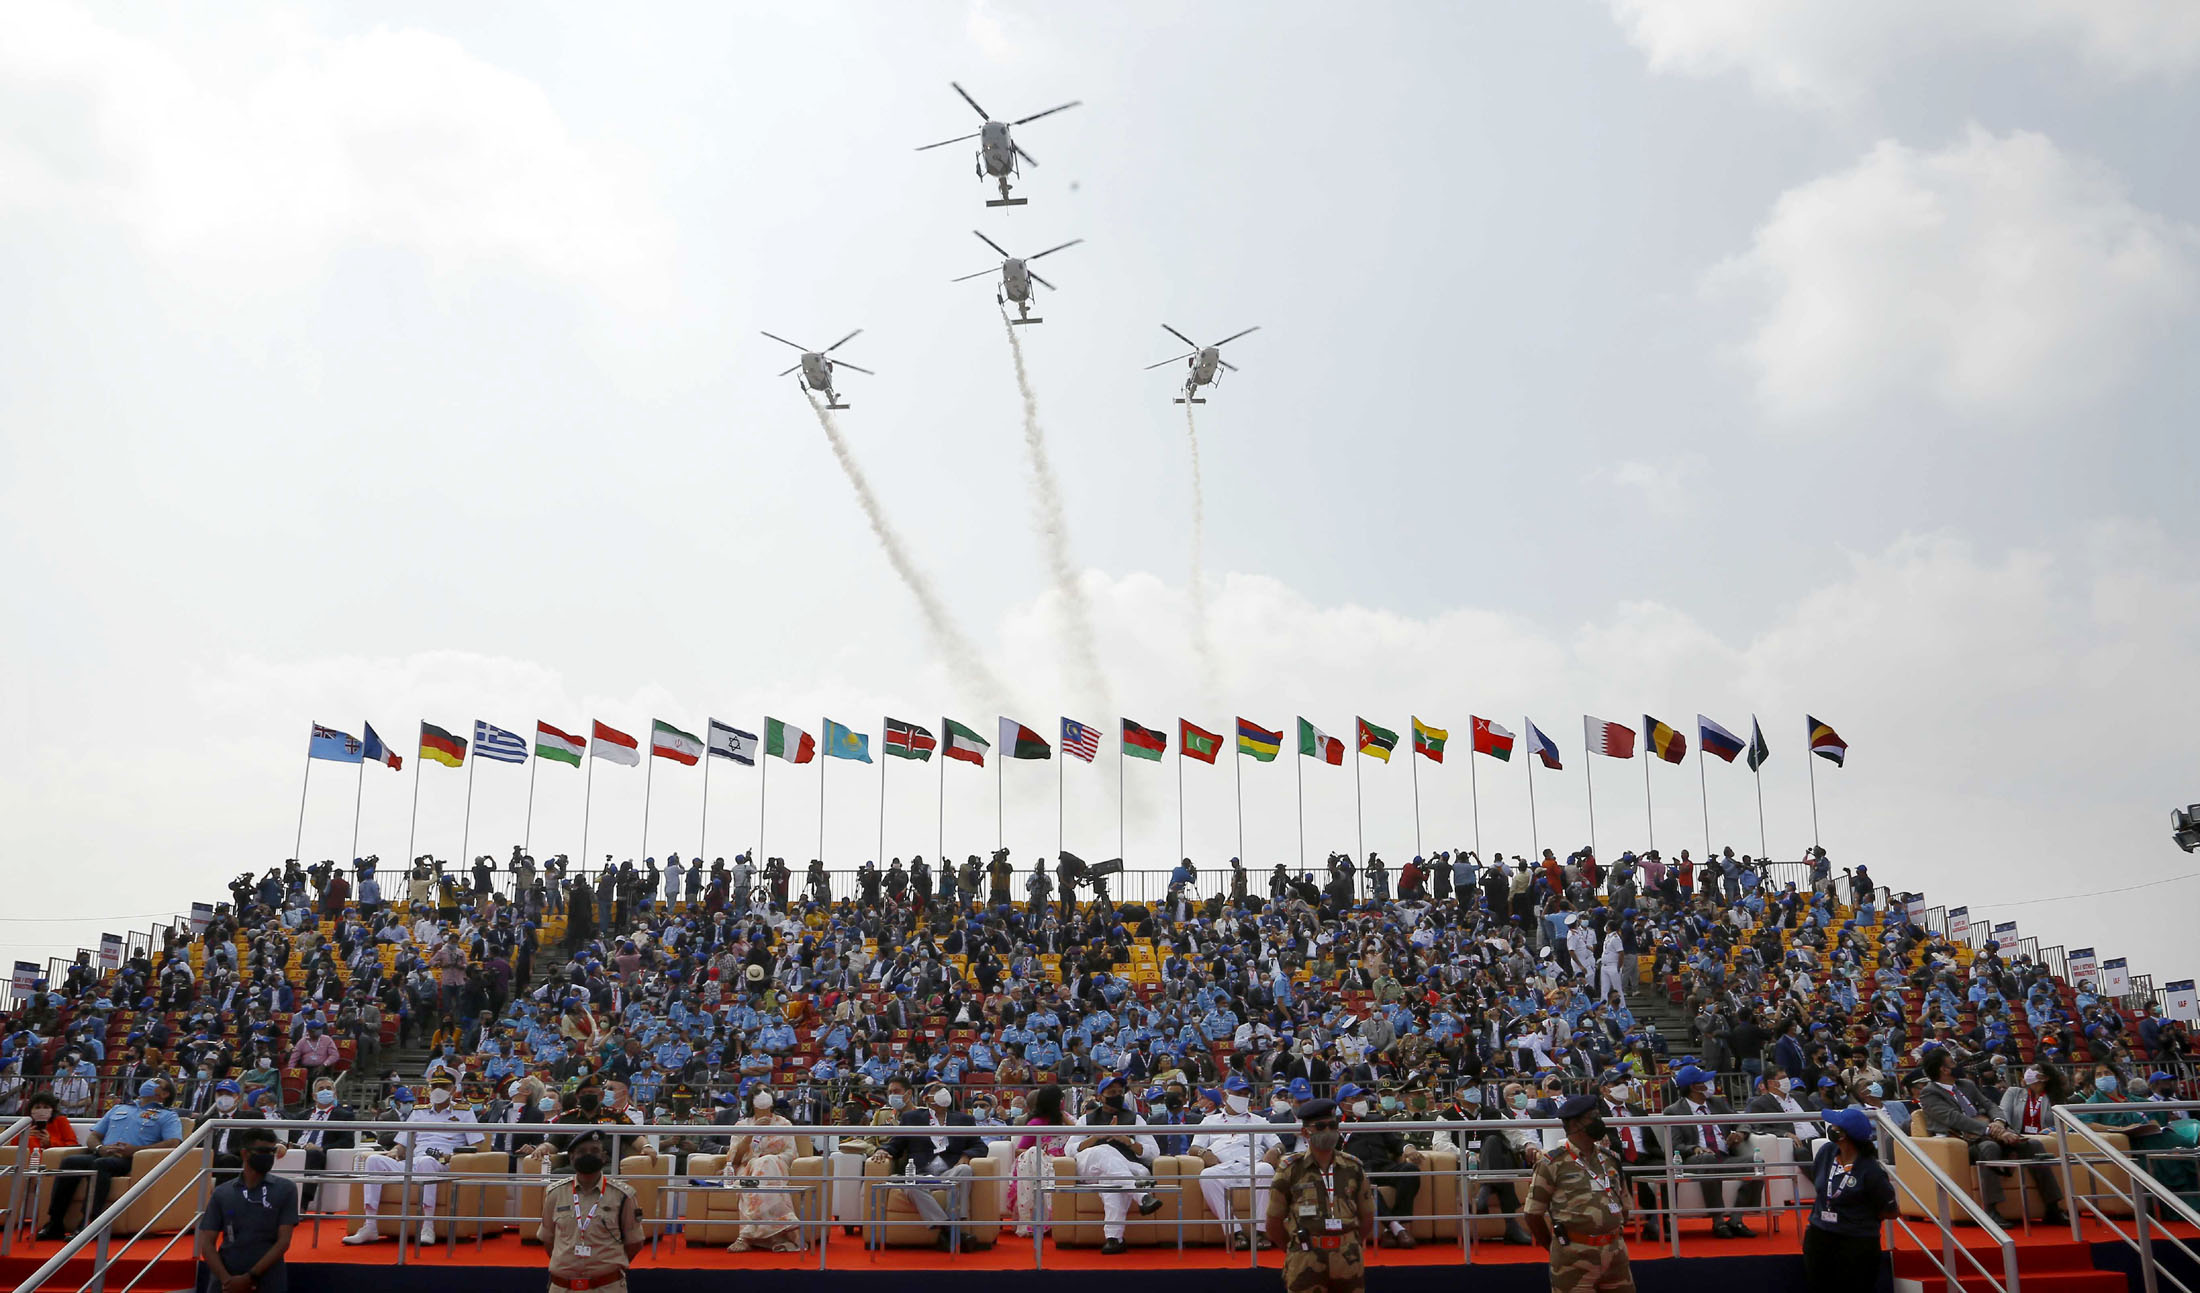 The Union Minister for Defence, Shri Rajnath Singh at the Aero India 2021 biennial Air Show, at the Air Force Station, Yelahanka, in Bengaluru on February 03, 2021.